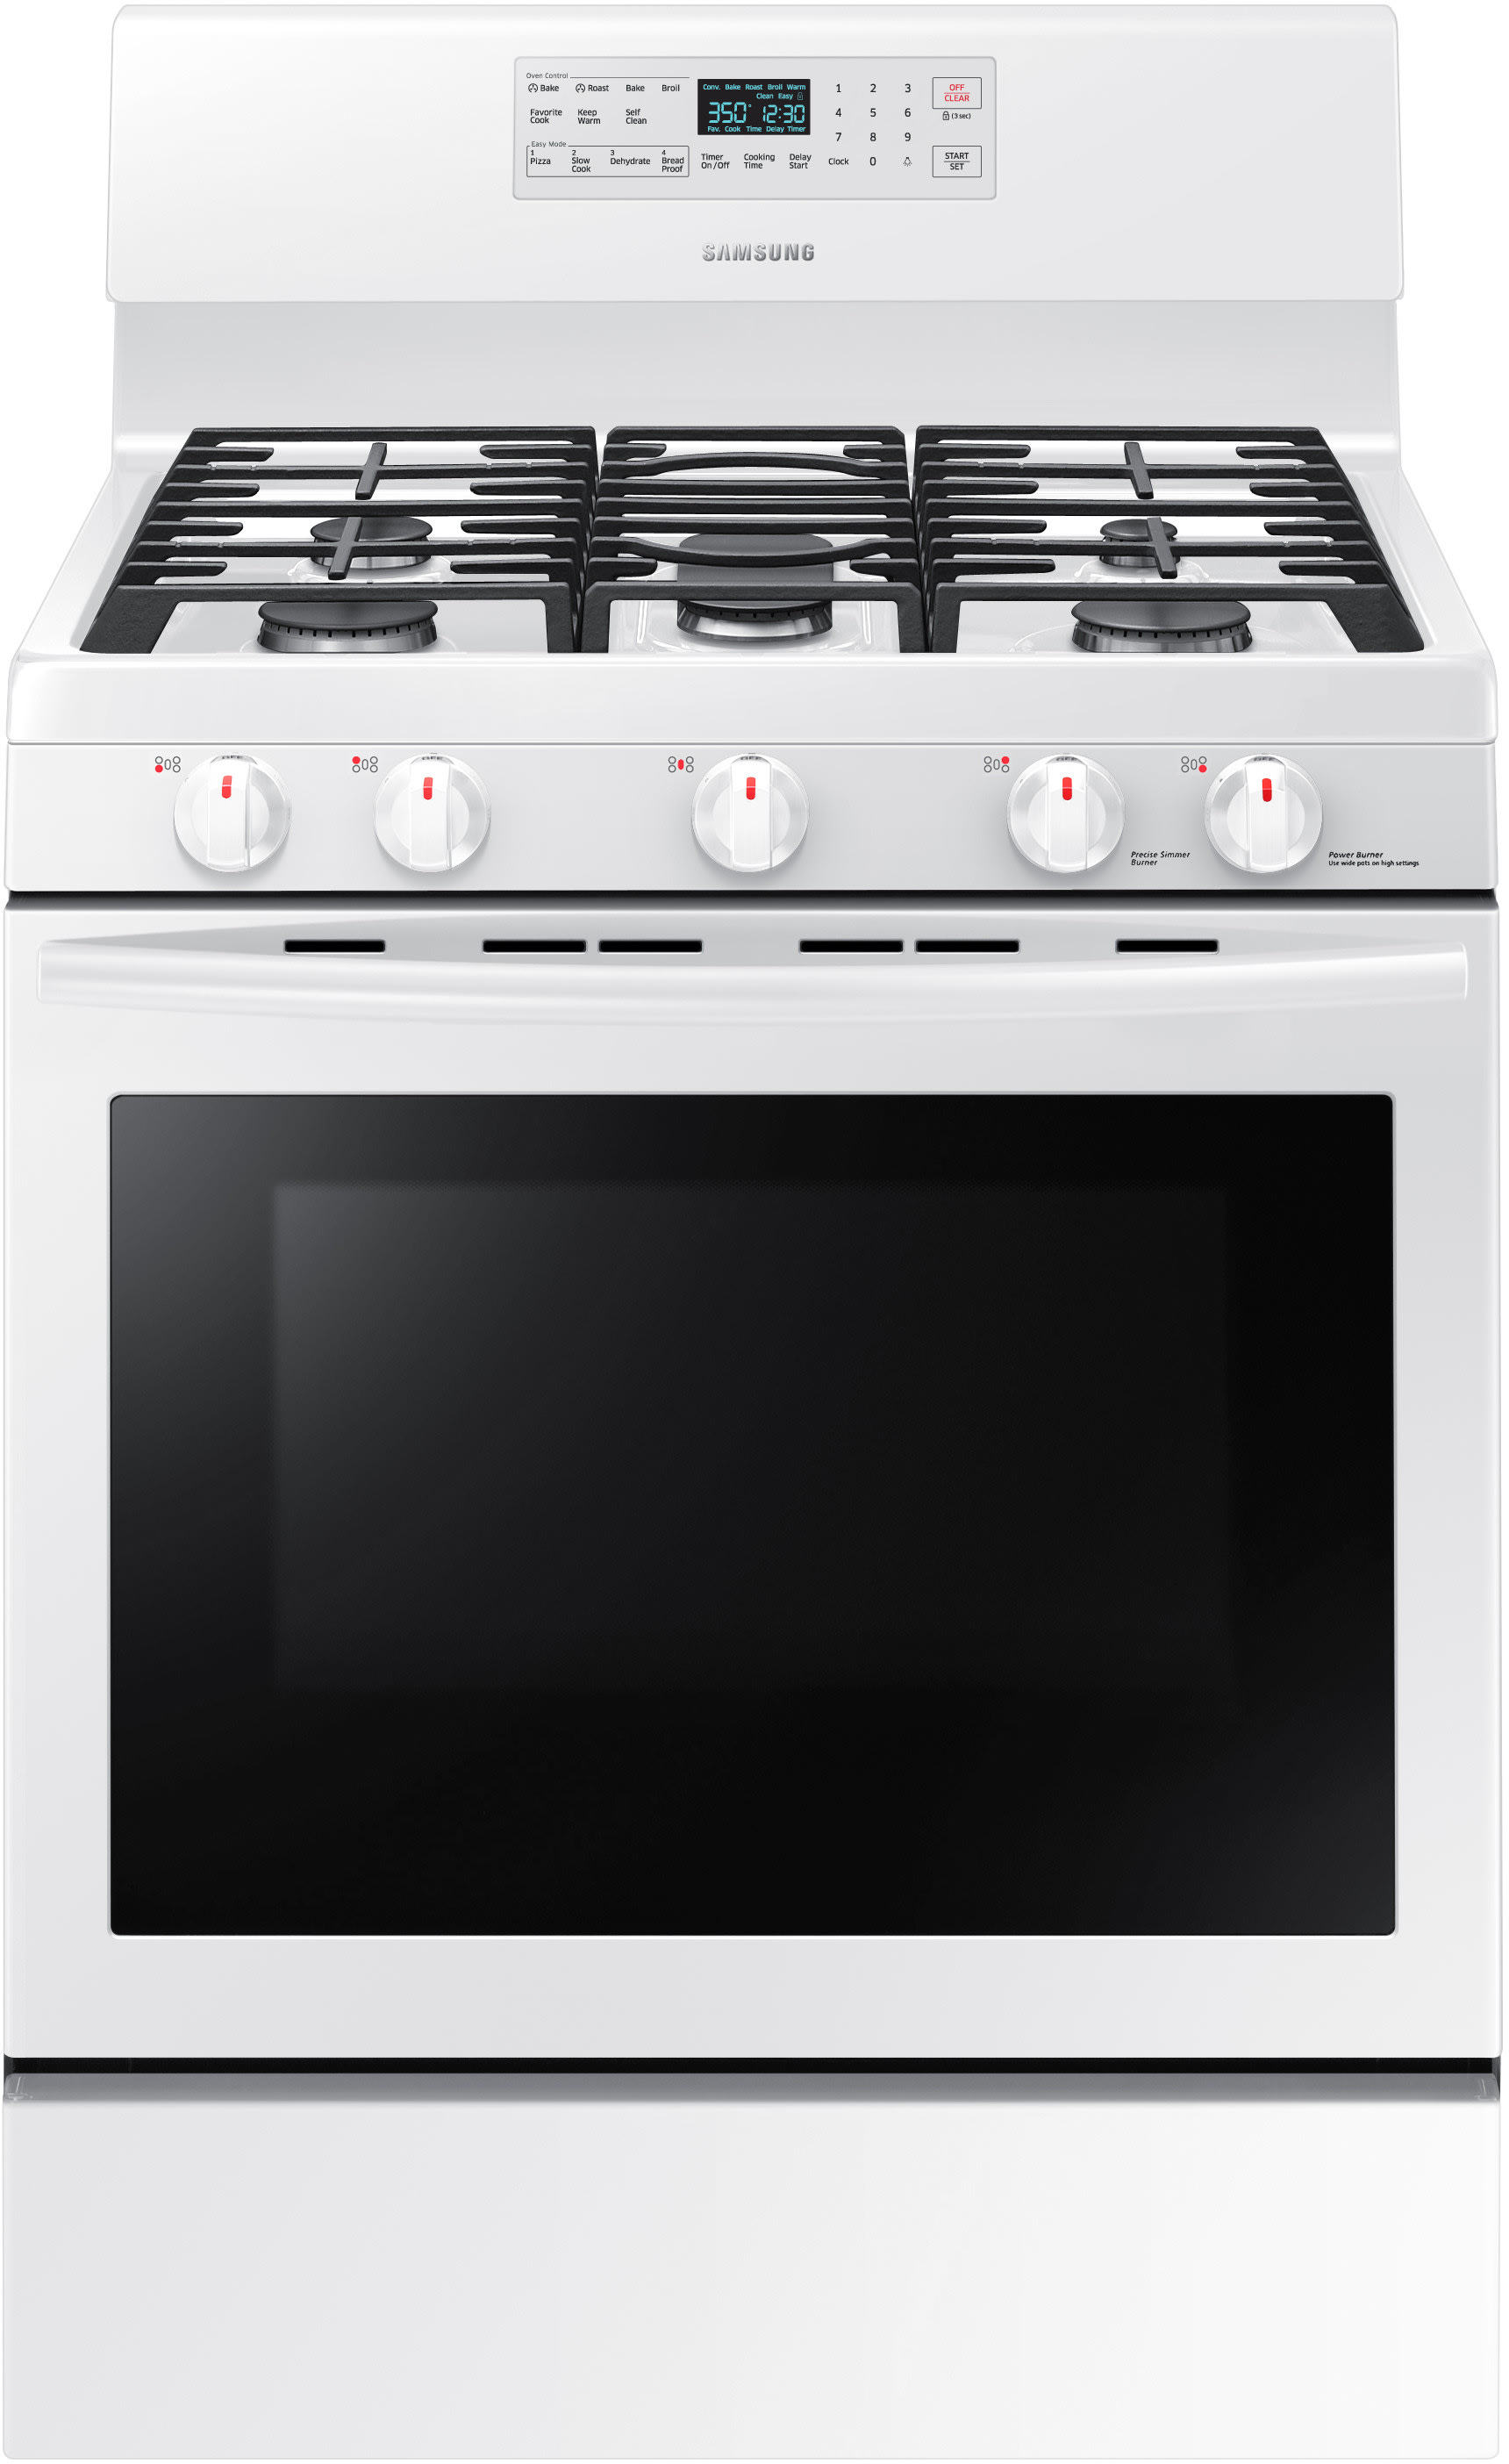 samsung nx58m5600sw 30 inch freestanding gas range with convection oven flexible cooktop and. Black Bedroom Furniture Sets. Home Design Ideas